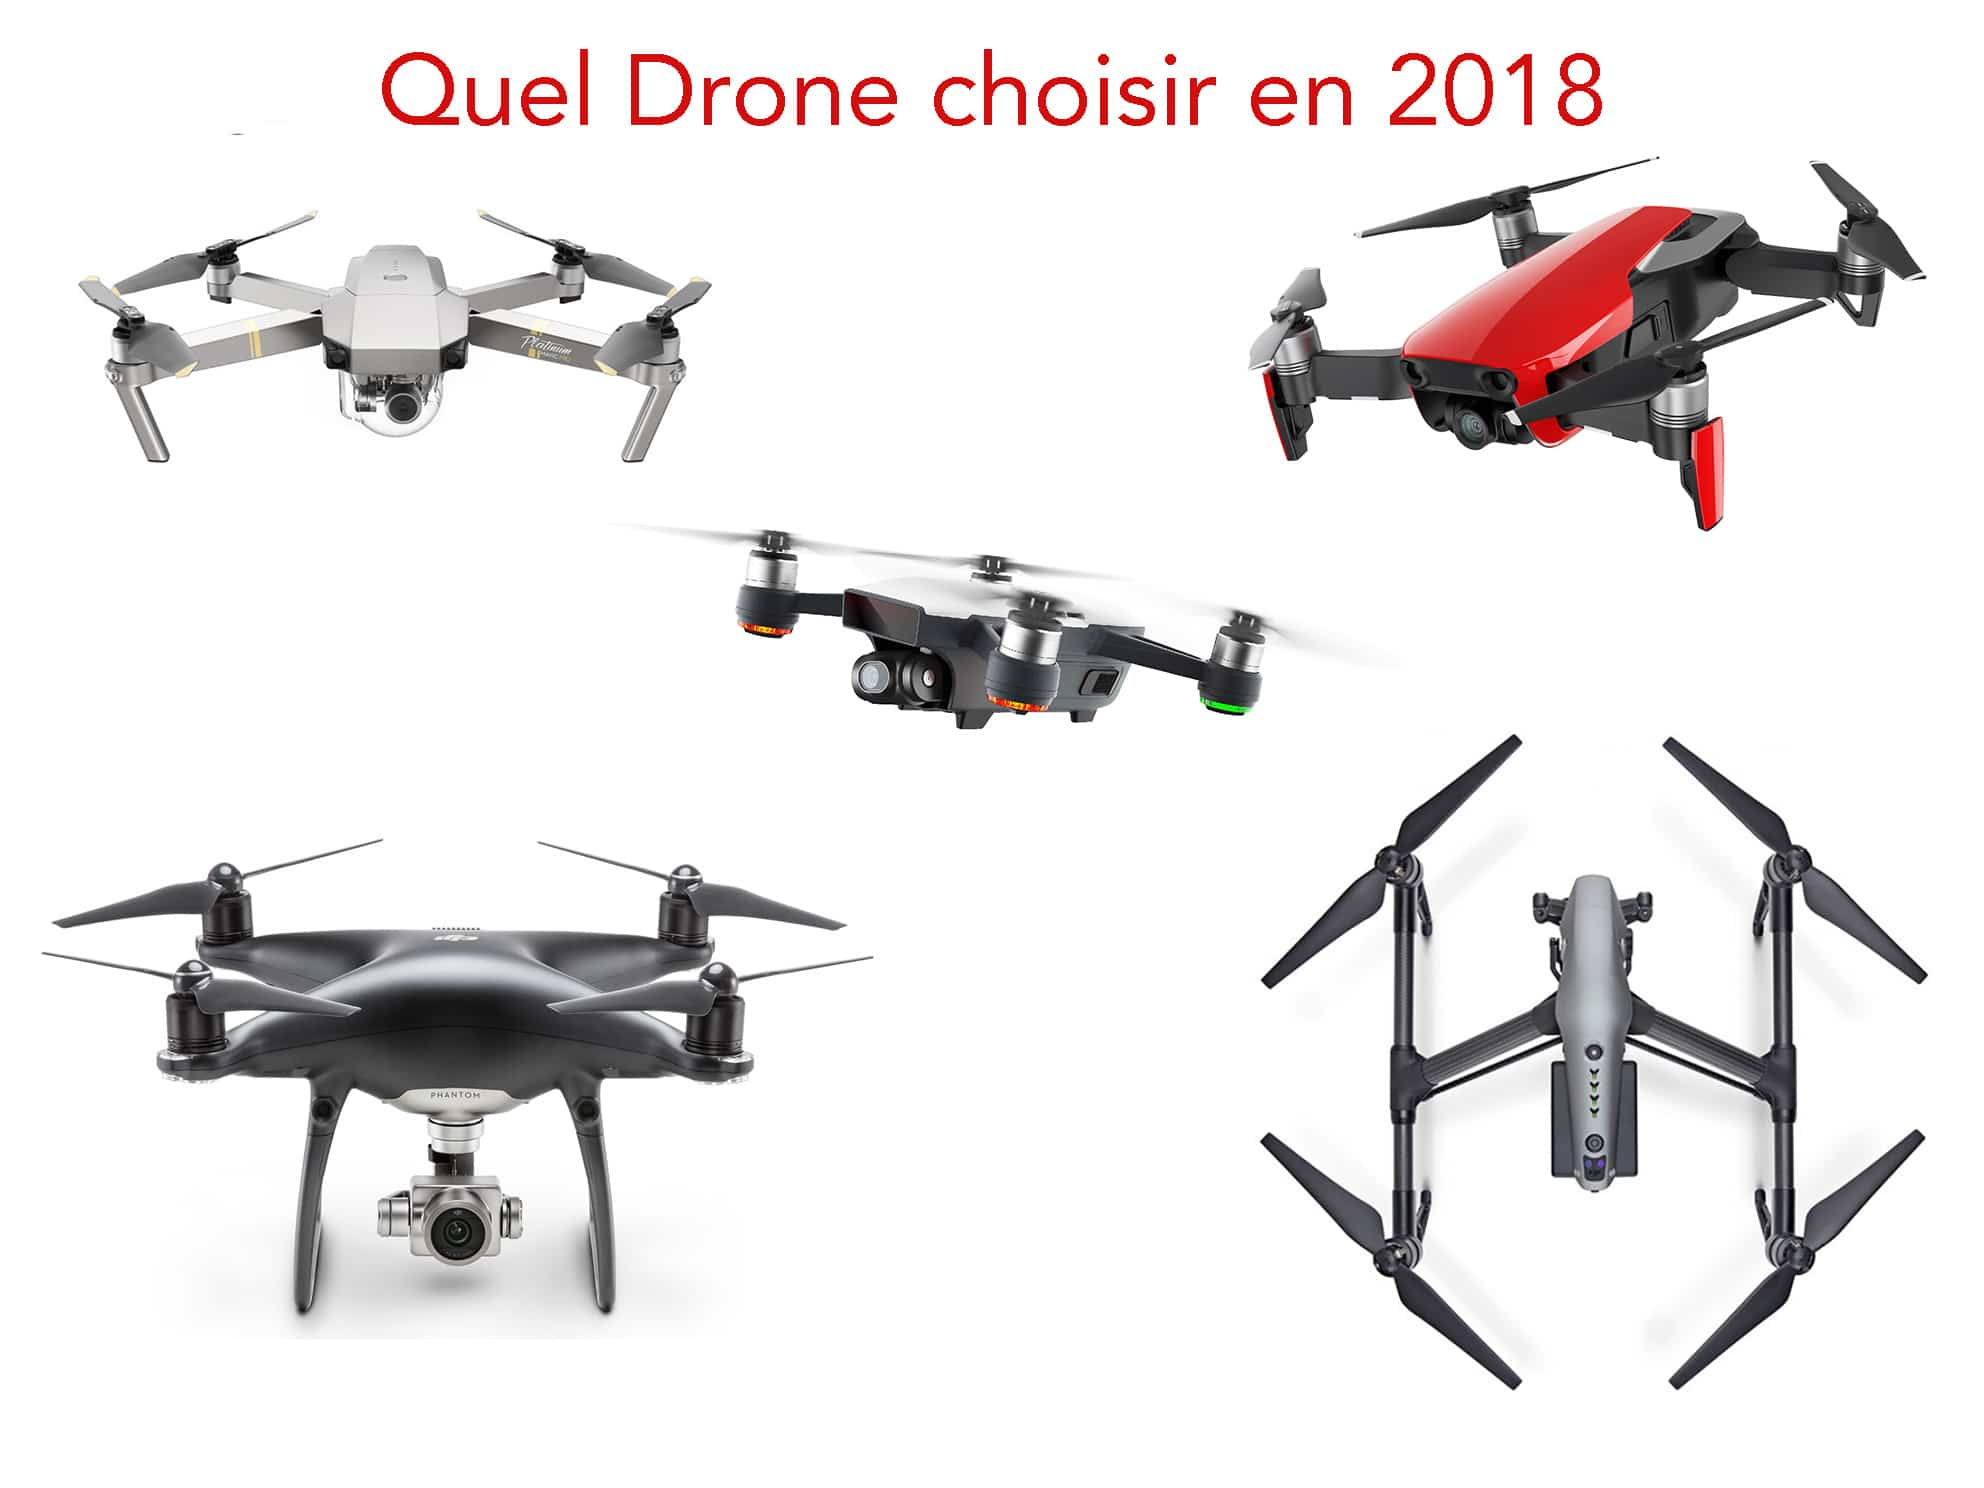 quel drone choisir en 2018 les conseils de frenchi drone. Black Bedroom Furniture Sets. Home Design Ideas